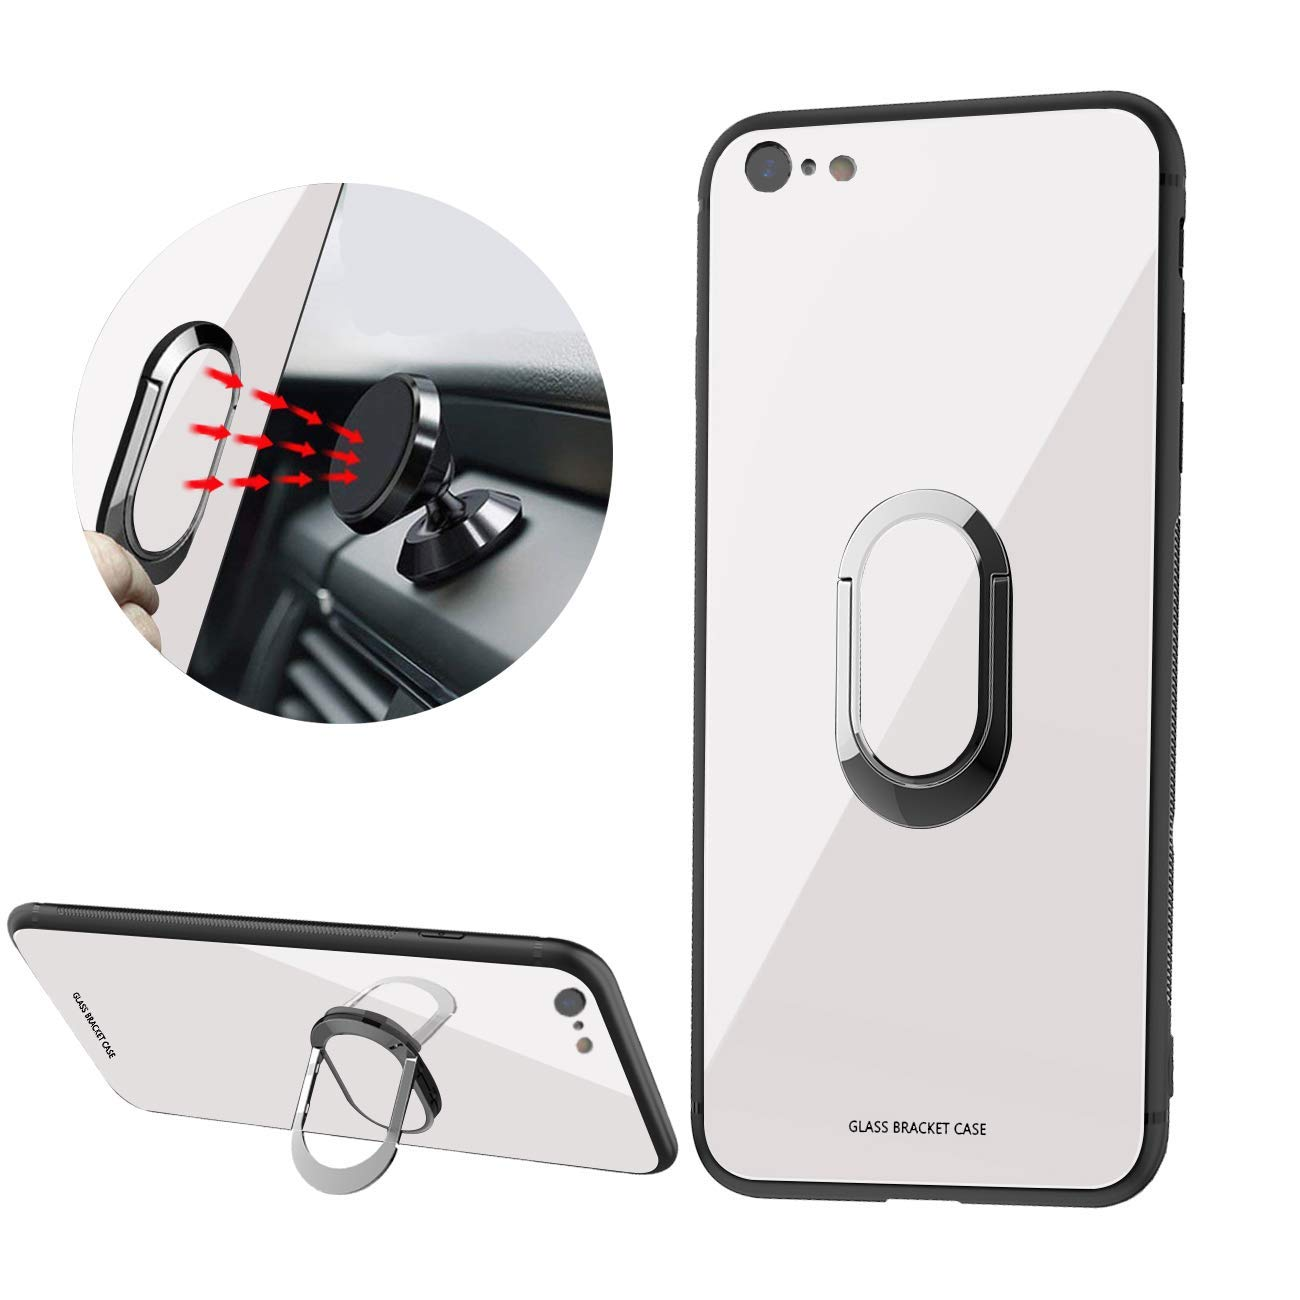 Newseego Compatible iPhone 7 Case,iPhone 8 Case,Tempered Glass Hard Back Cover Anti-Scratches Soft TPU Bumper Case with 360 Rotating Magnet Finger Ring Holder for iPhone 7/8 -White